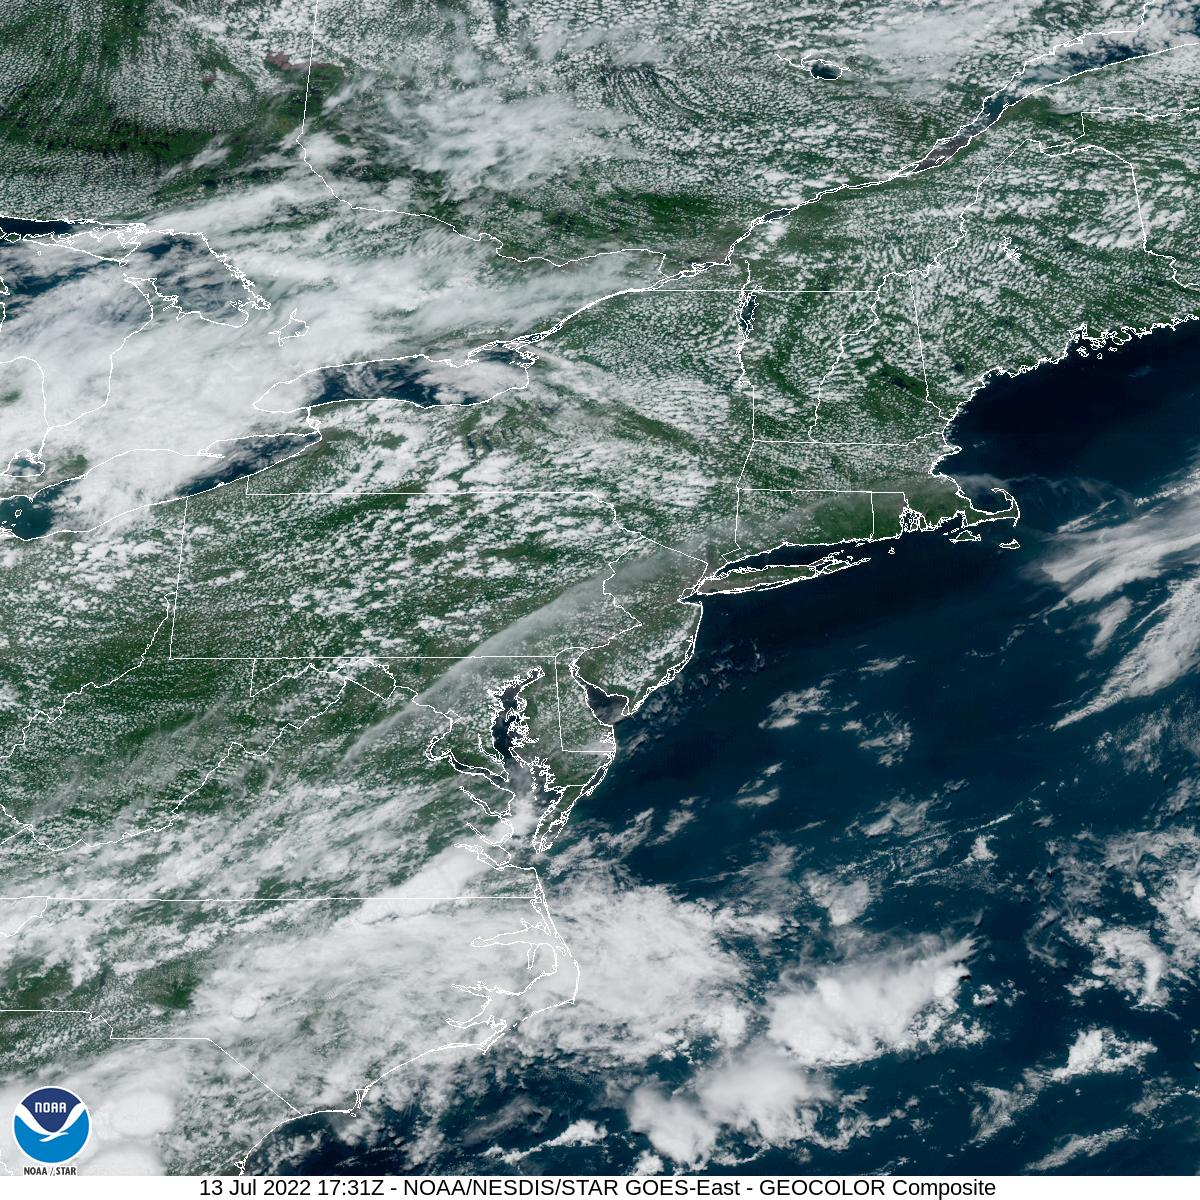 Latest GOES-16 Geocolor Image of Northeast sector